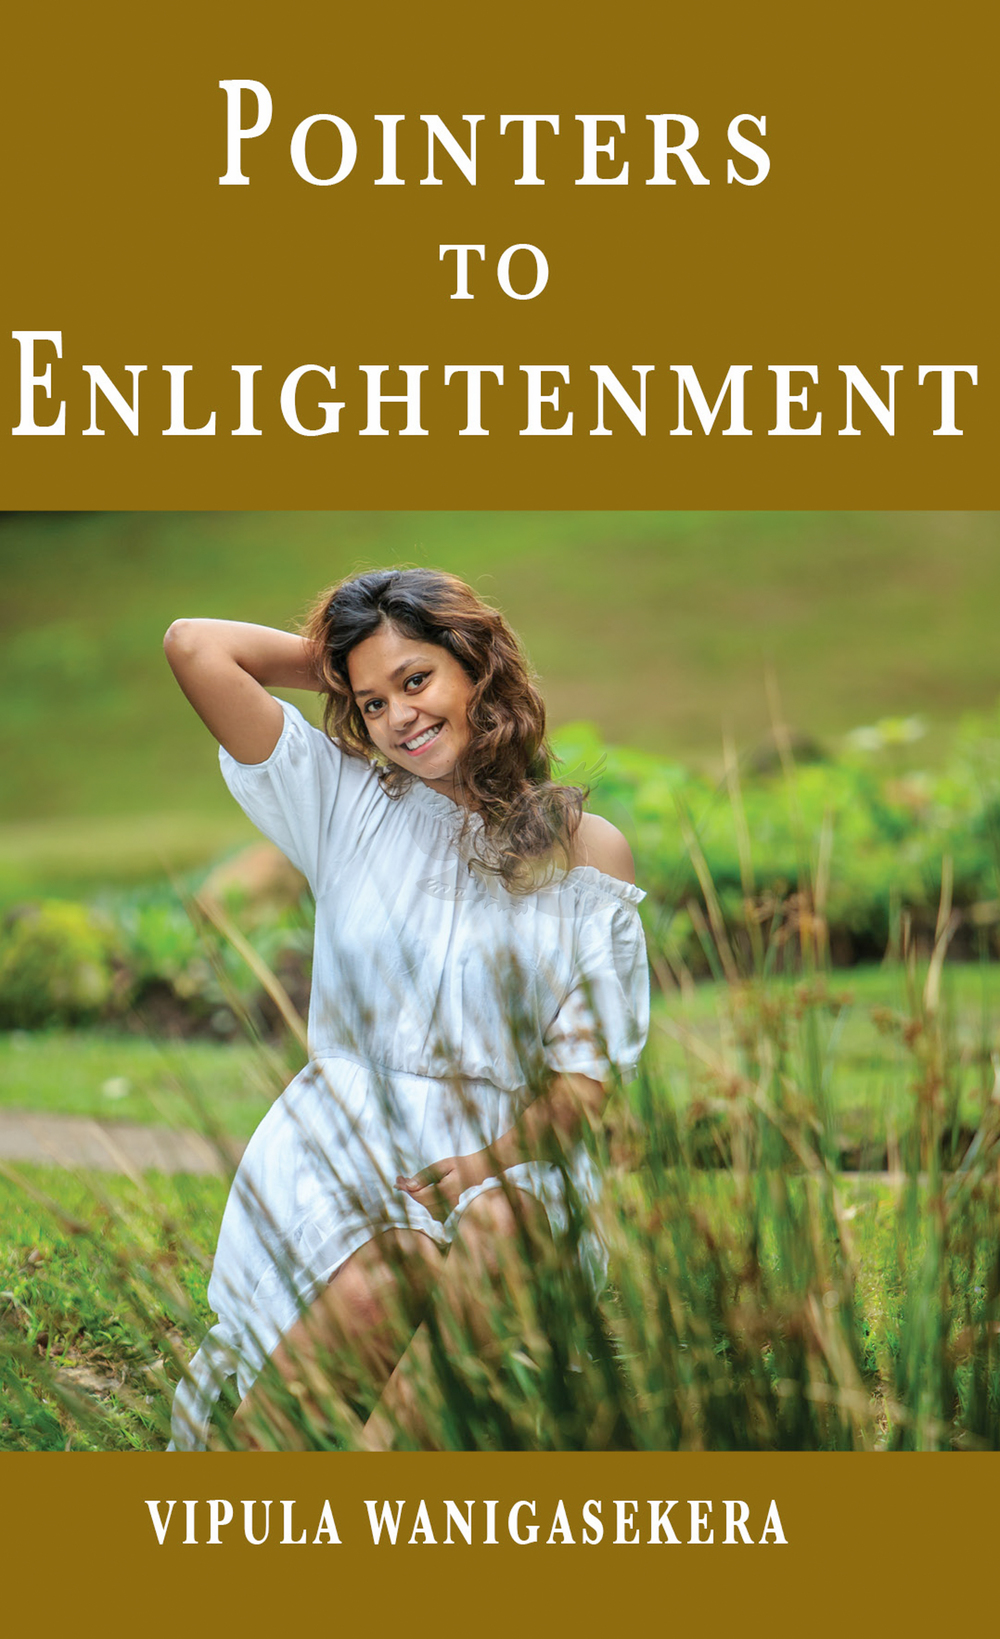 Pointers to Enlightenment cover final2.jpg